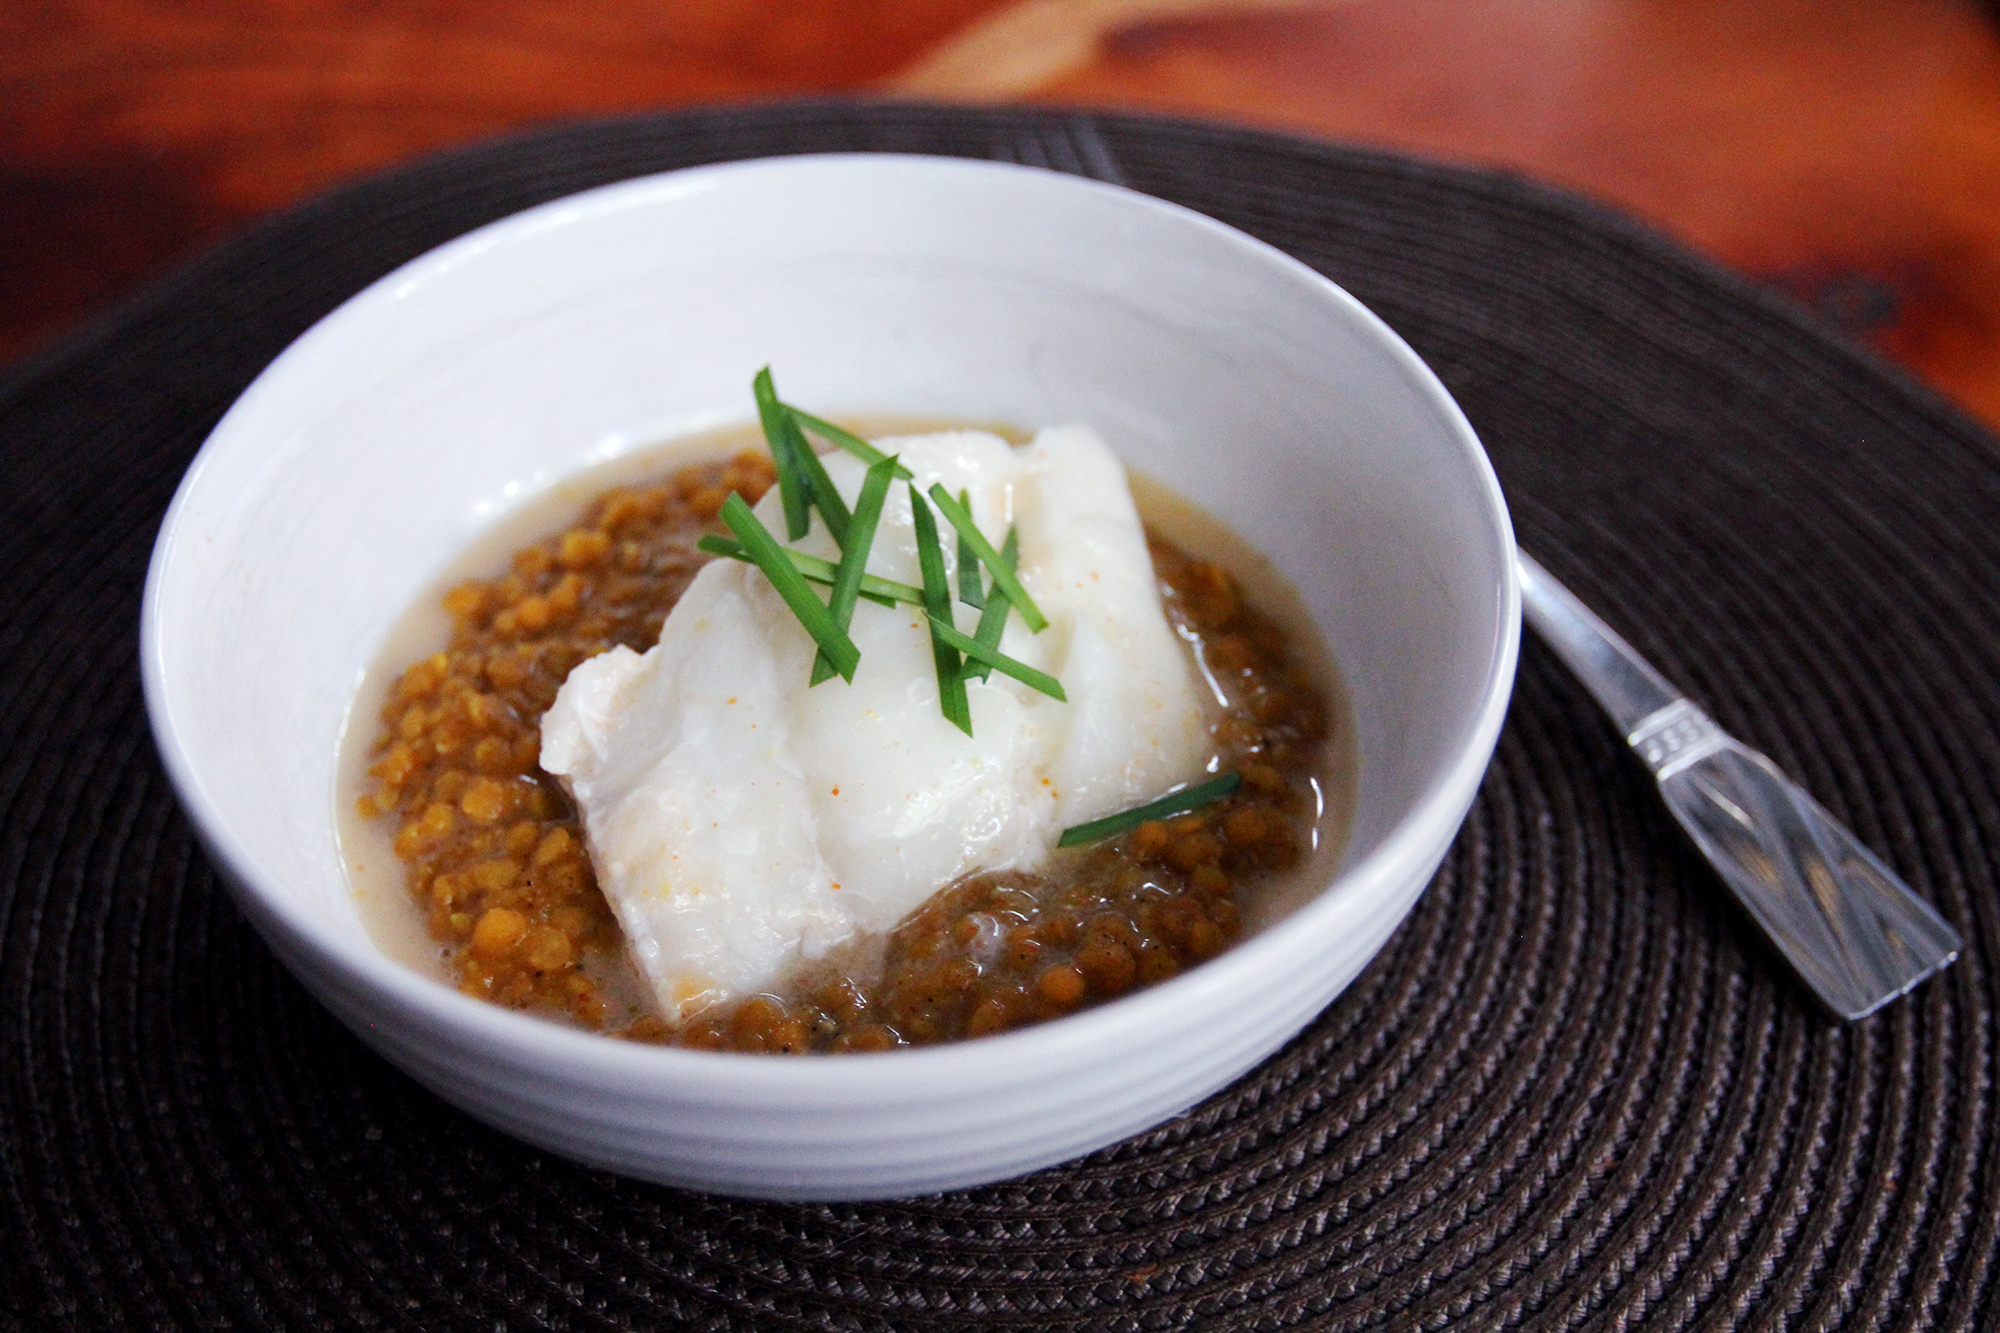 jo-torrijos-states-of-reverie-coconut-poached-cod-red-curry-lentils-recipe-4.jpg